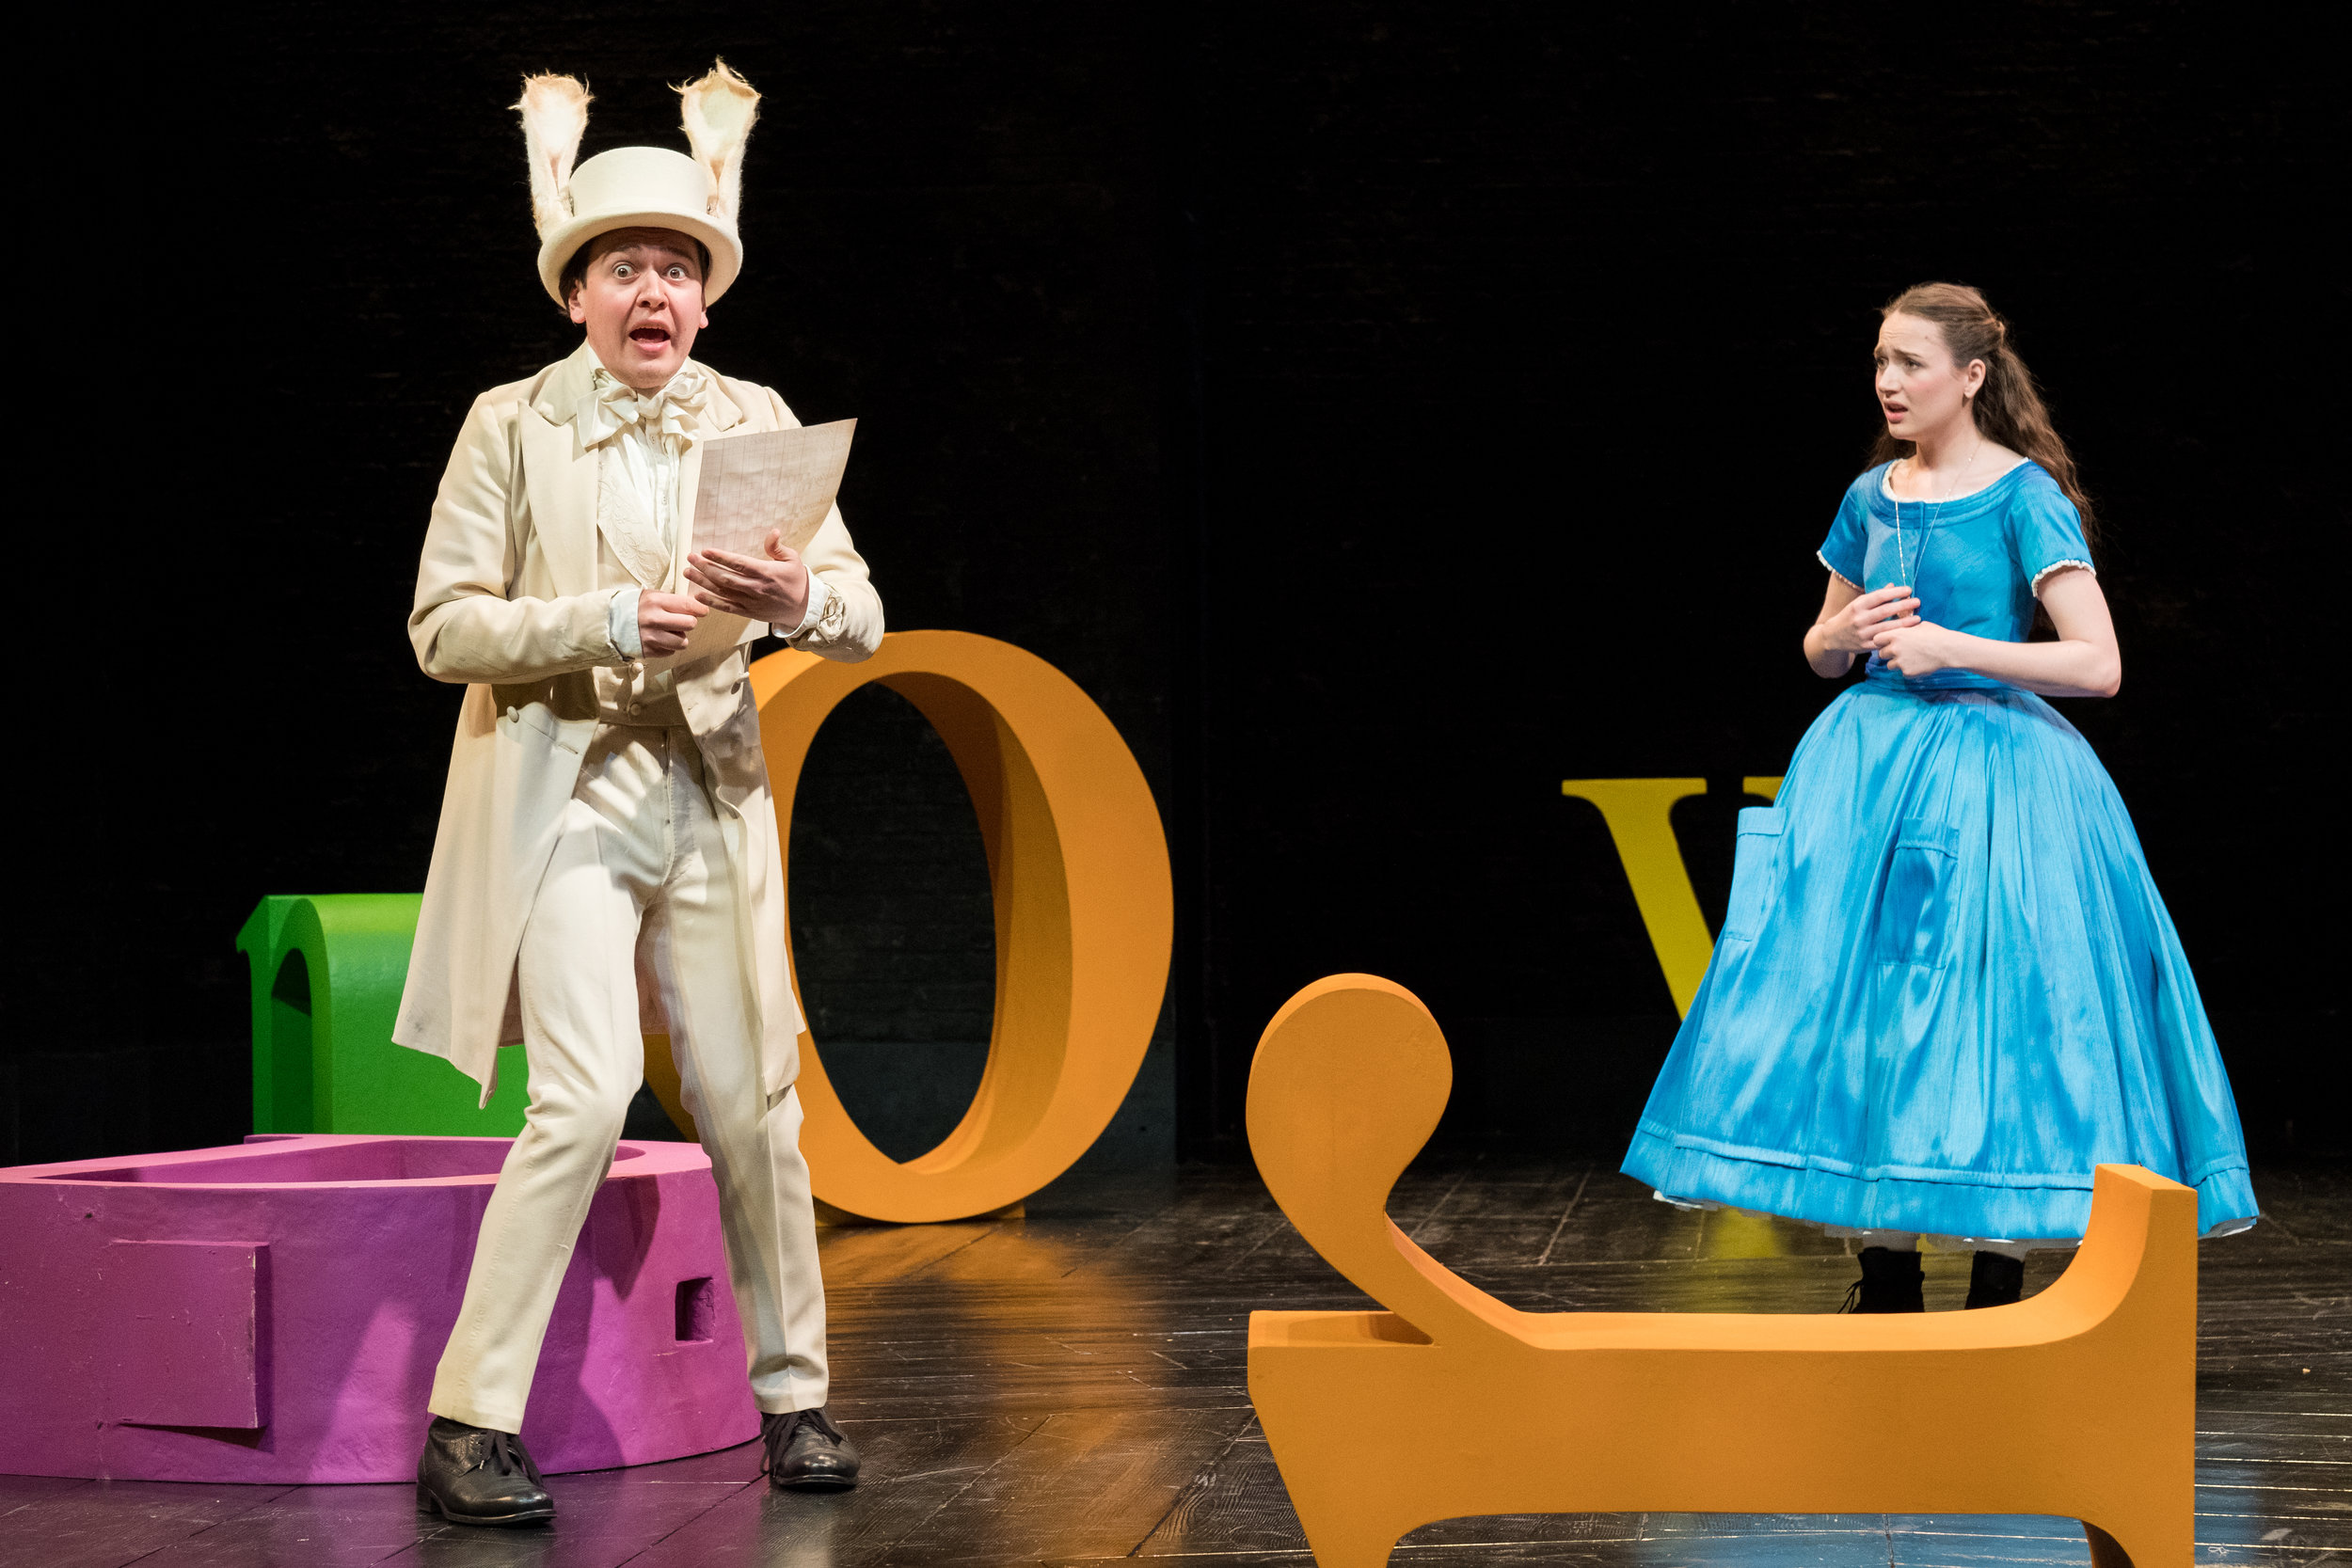 Tom Connor & Rebecca Birch in Alice in Wonderland, Storyhouse, composed by Jude Obermüller (photo by Mark Carline)